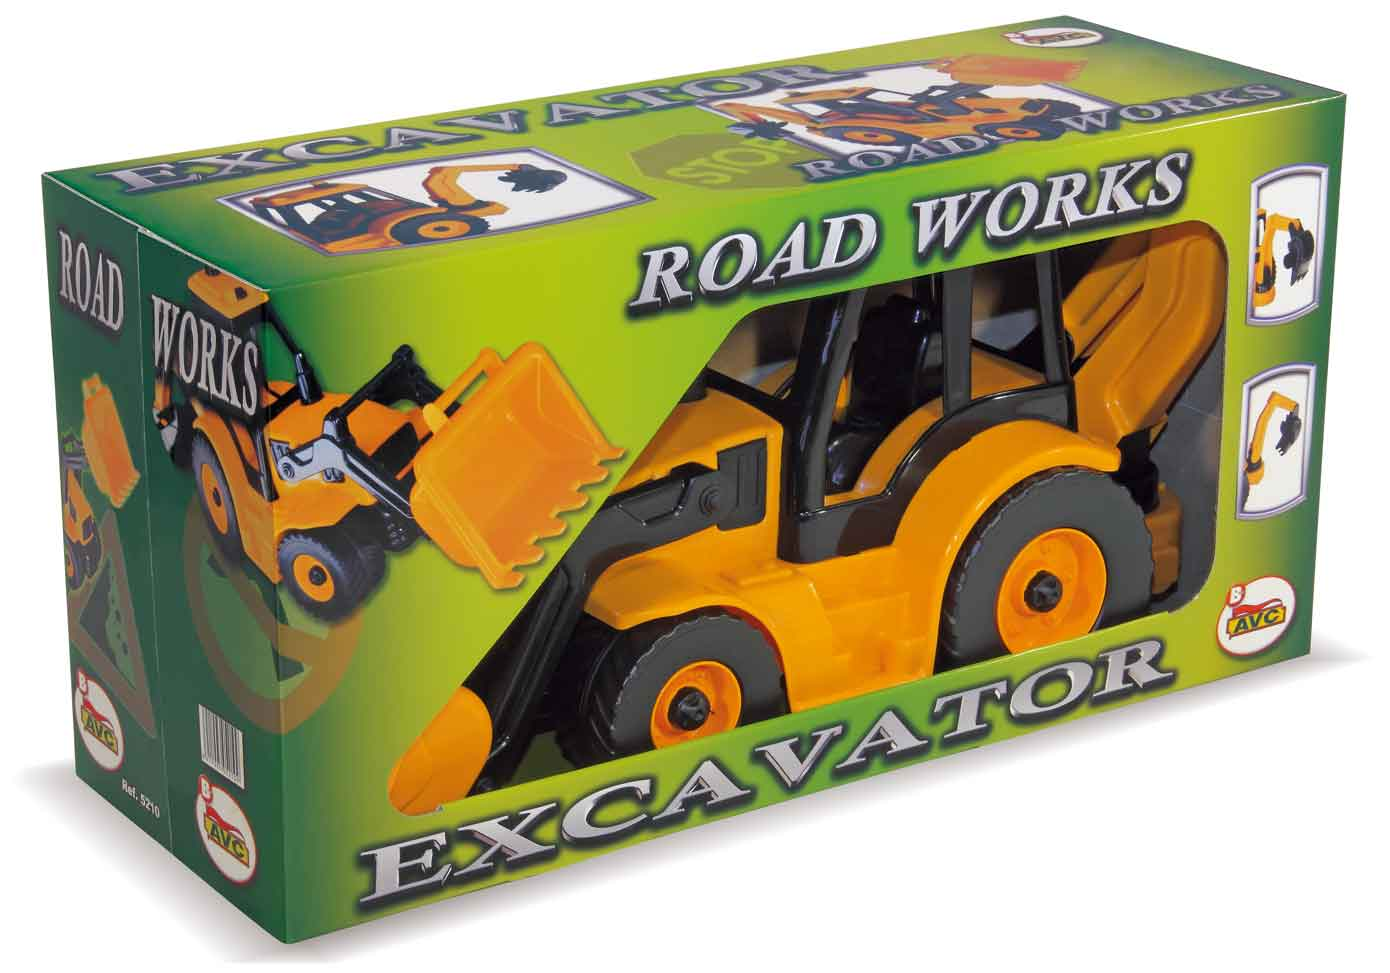 EXCAVADORA RETRO ROAD WORK 5210 - N13620